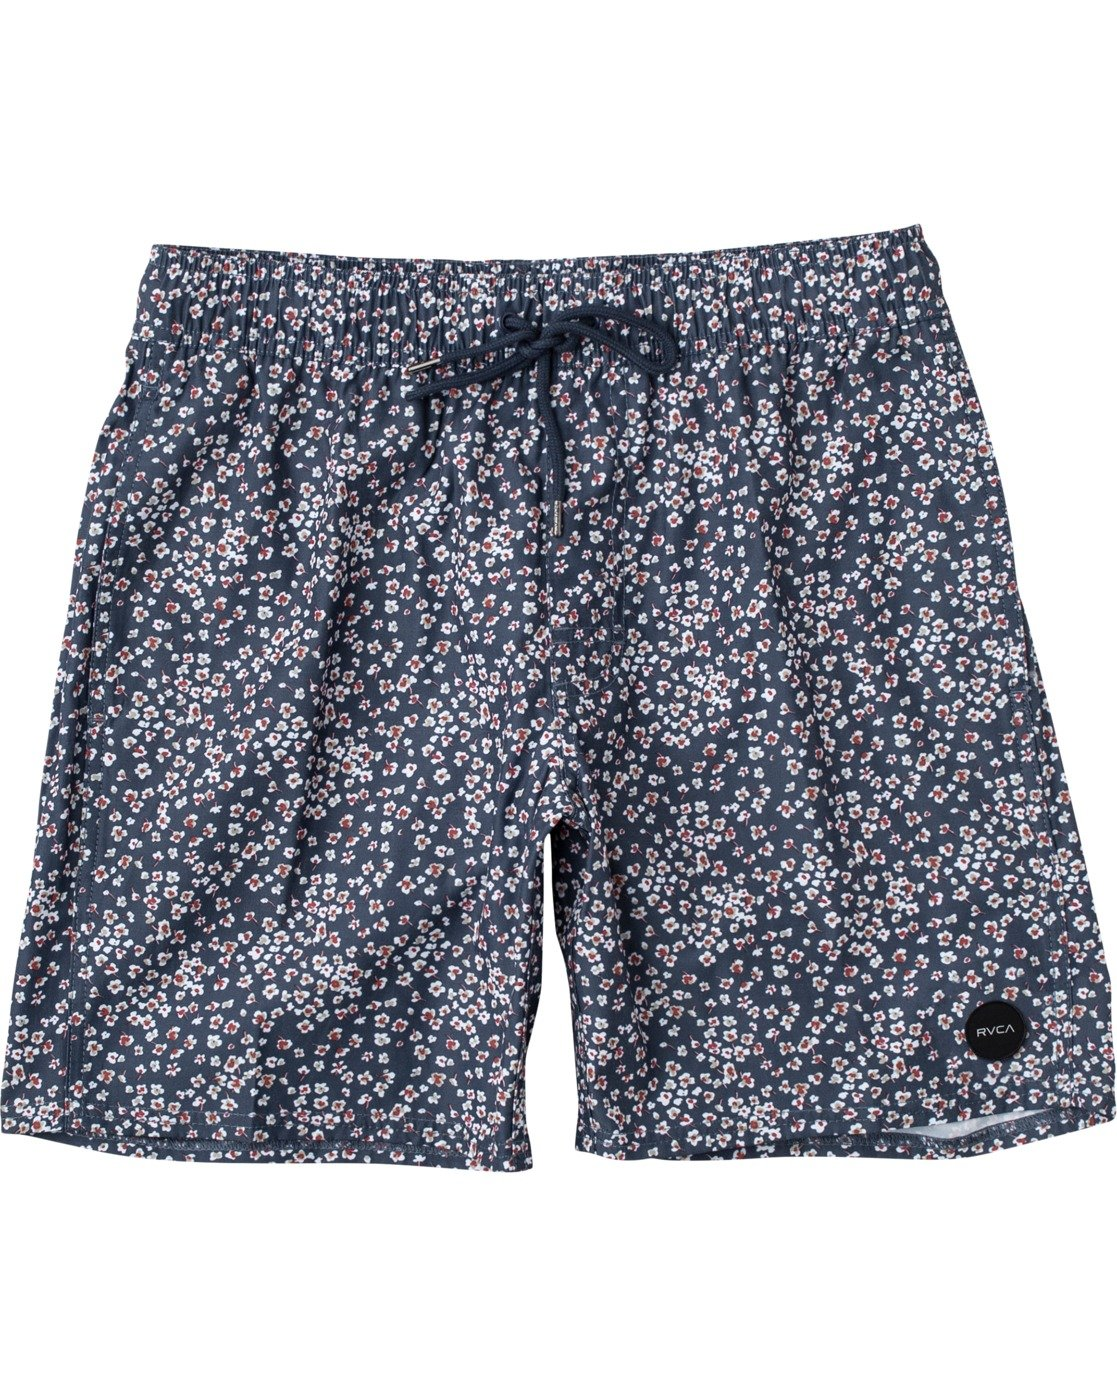 """0 Perry 17"""" - Elasticated Shorts for Men  W1VORHRVP1 RVCA"""